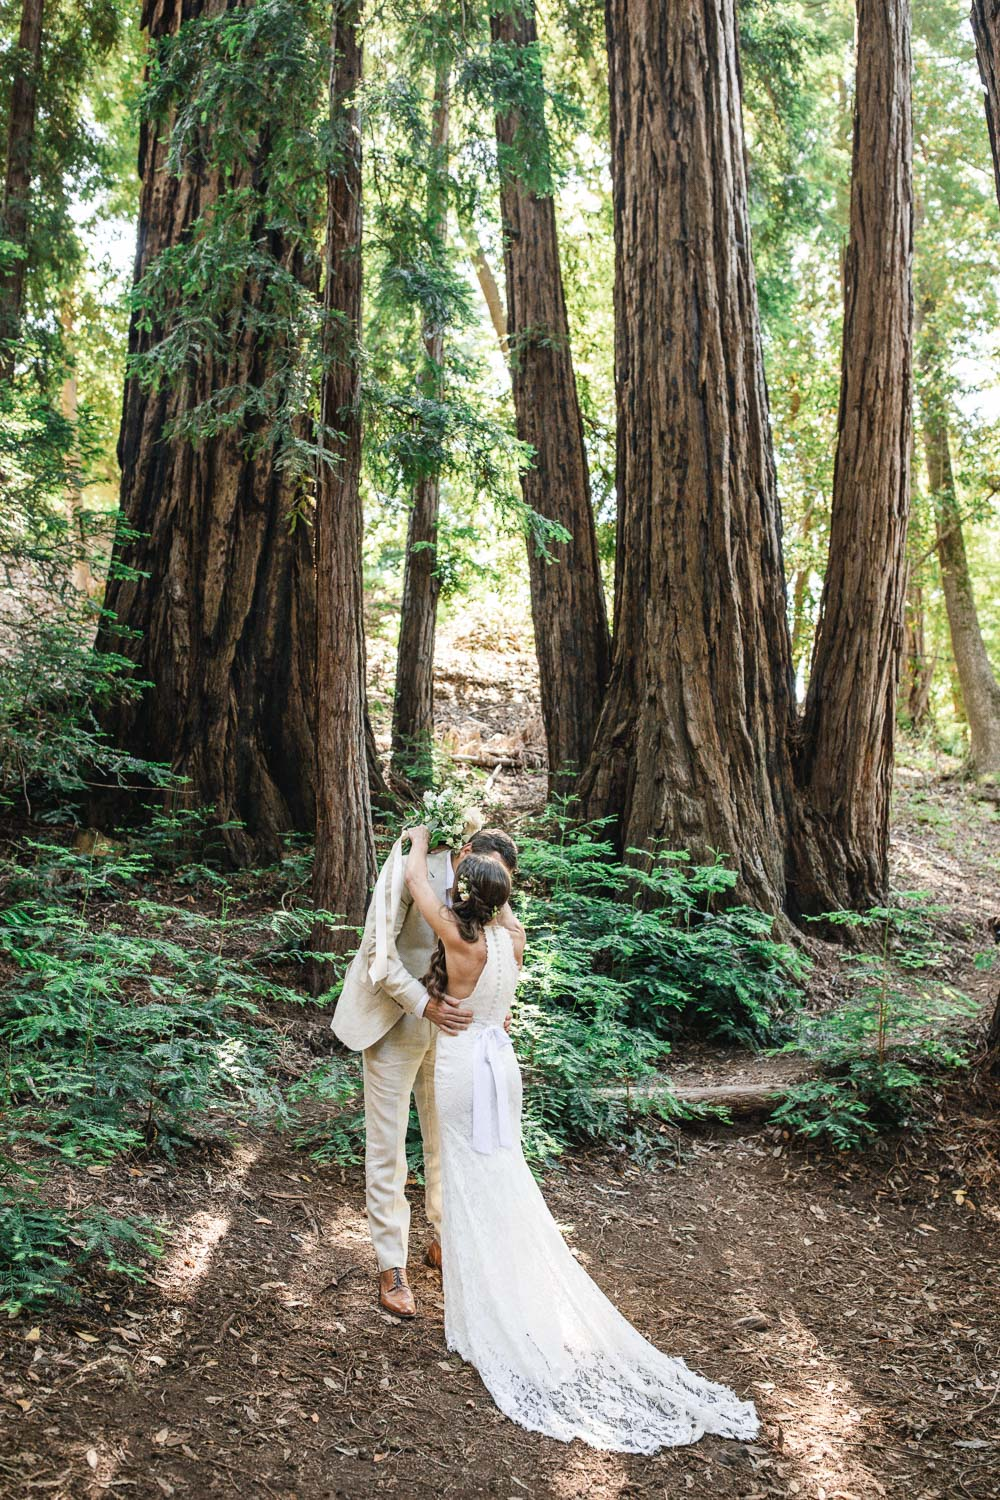 Big-Sur-Elopement-Santa-Barbara-Fine-Art-Wedding-Photography-171.jpg